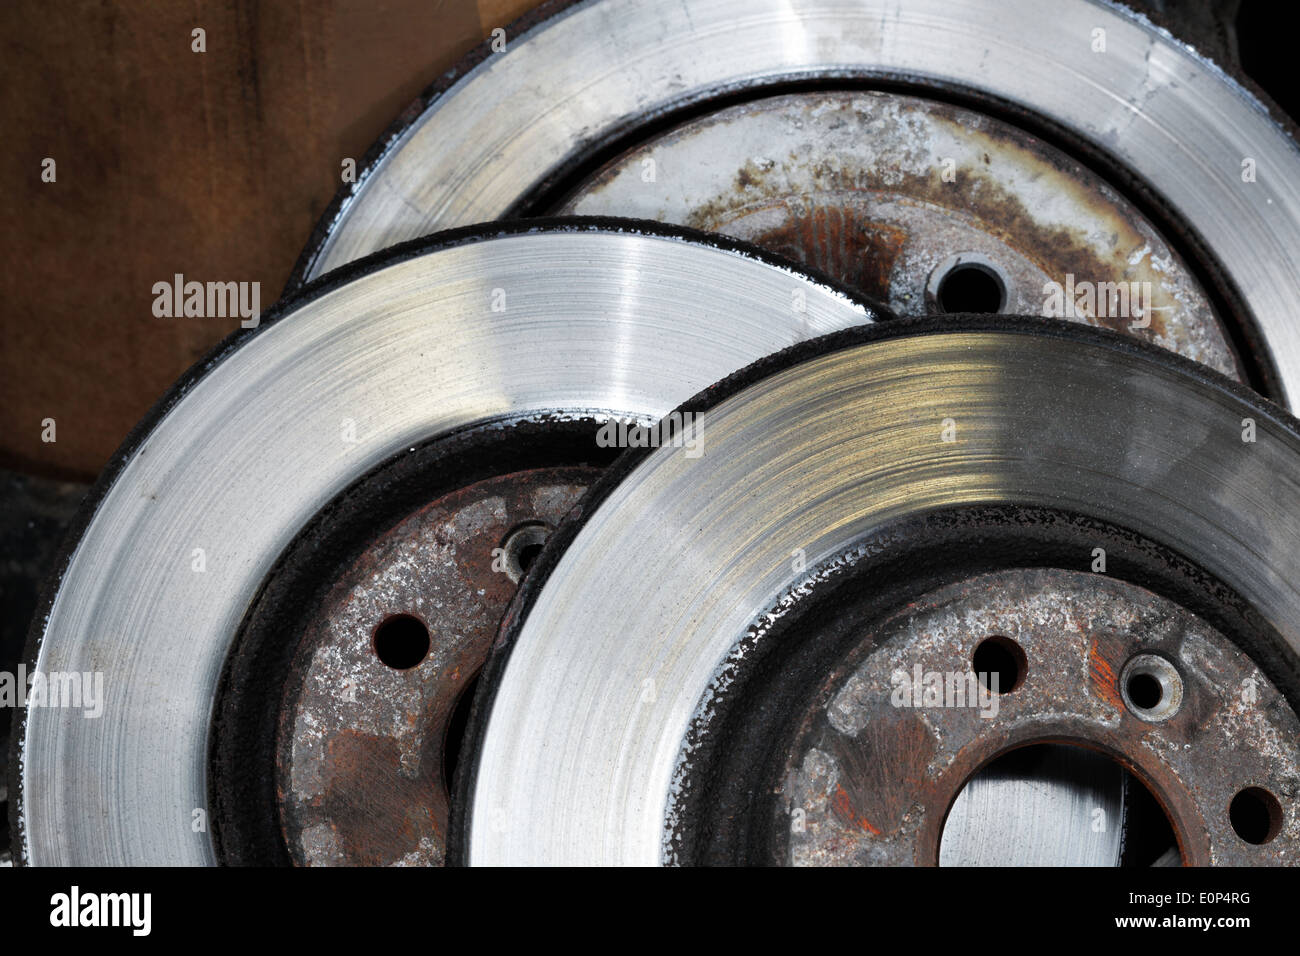 A Pile of worn out brake disks - Stock Image